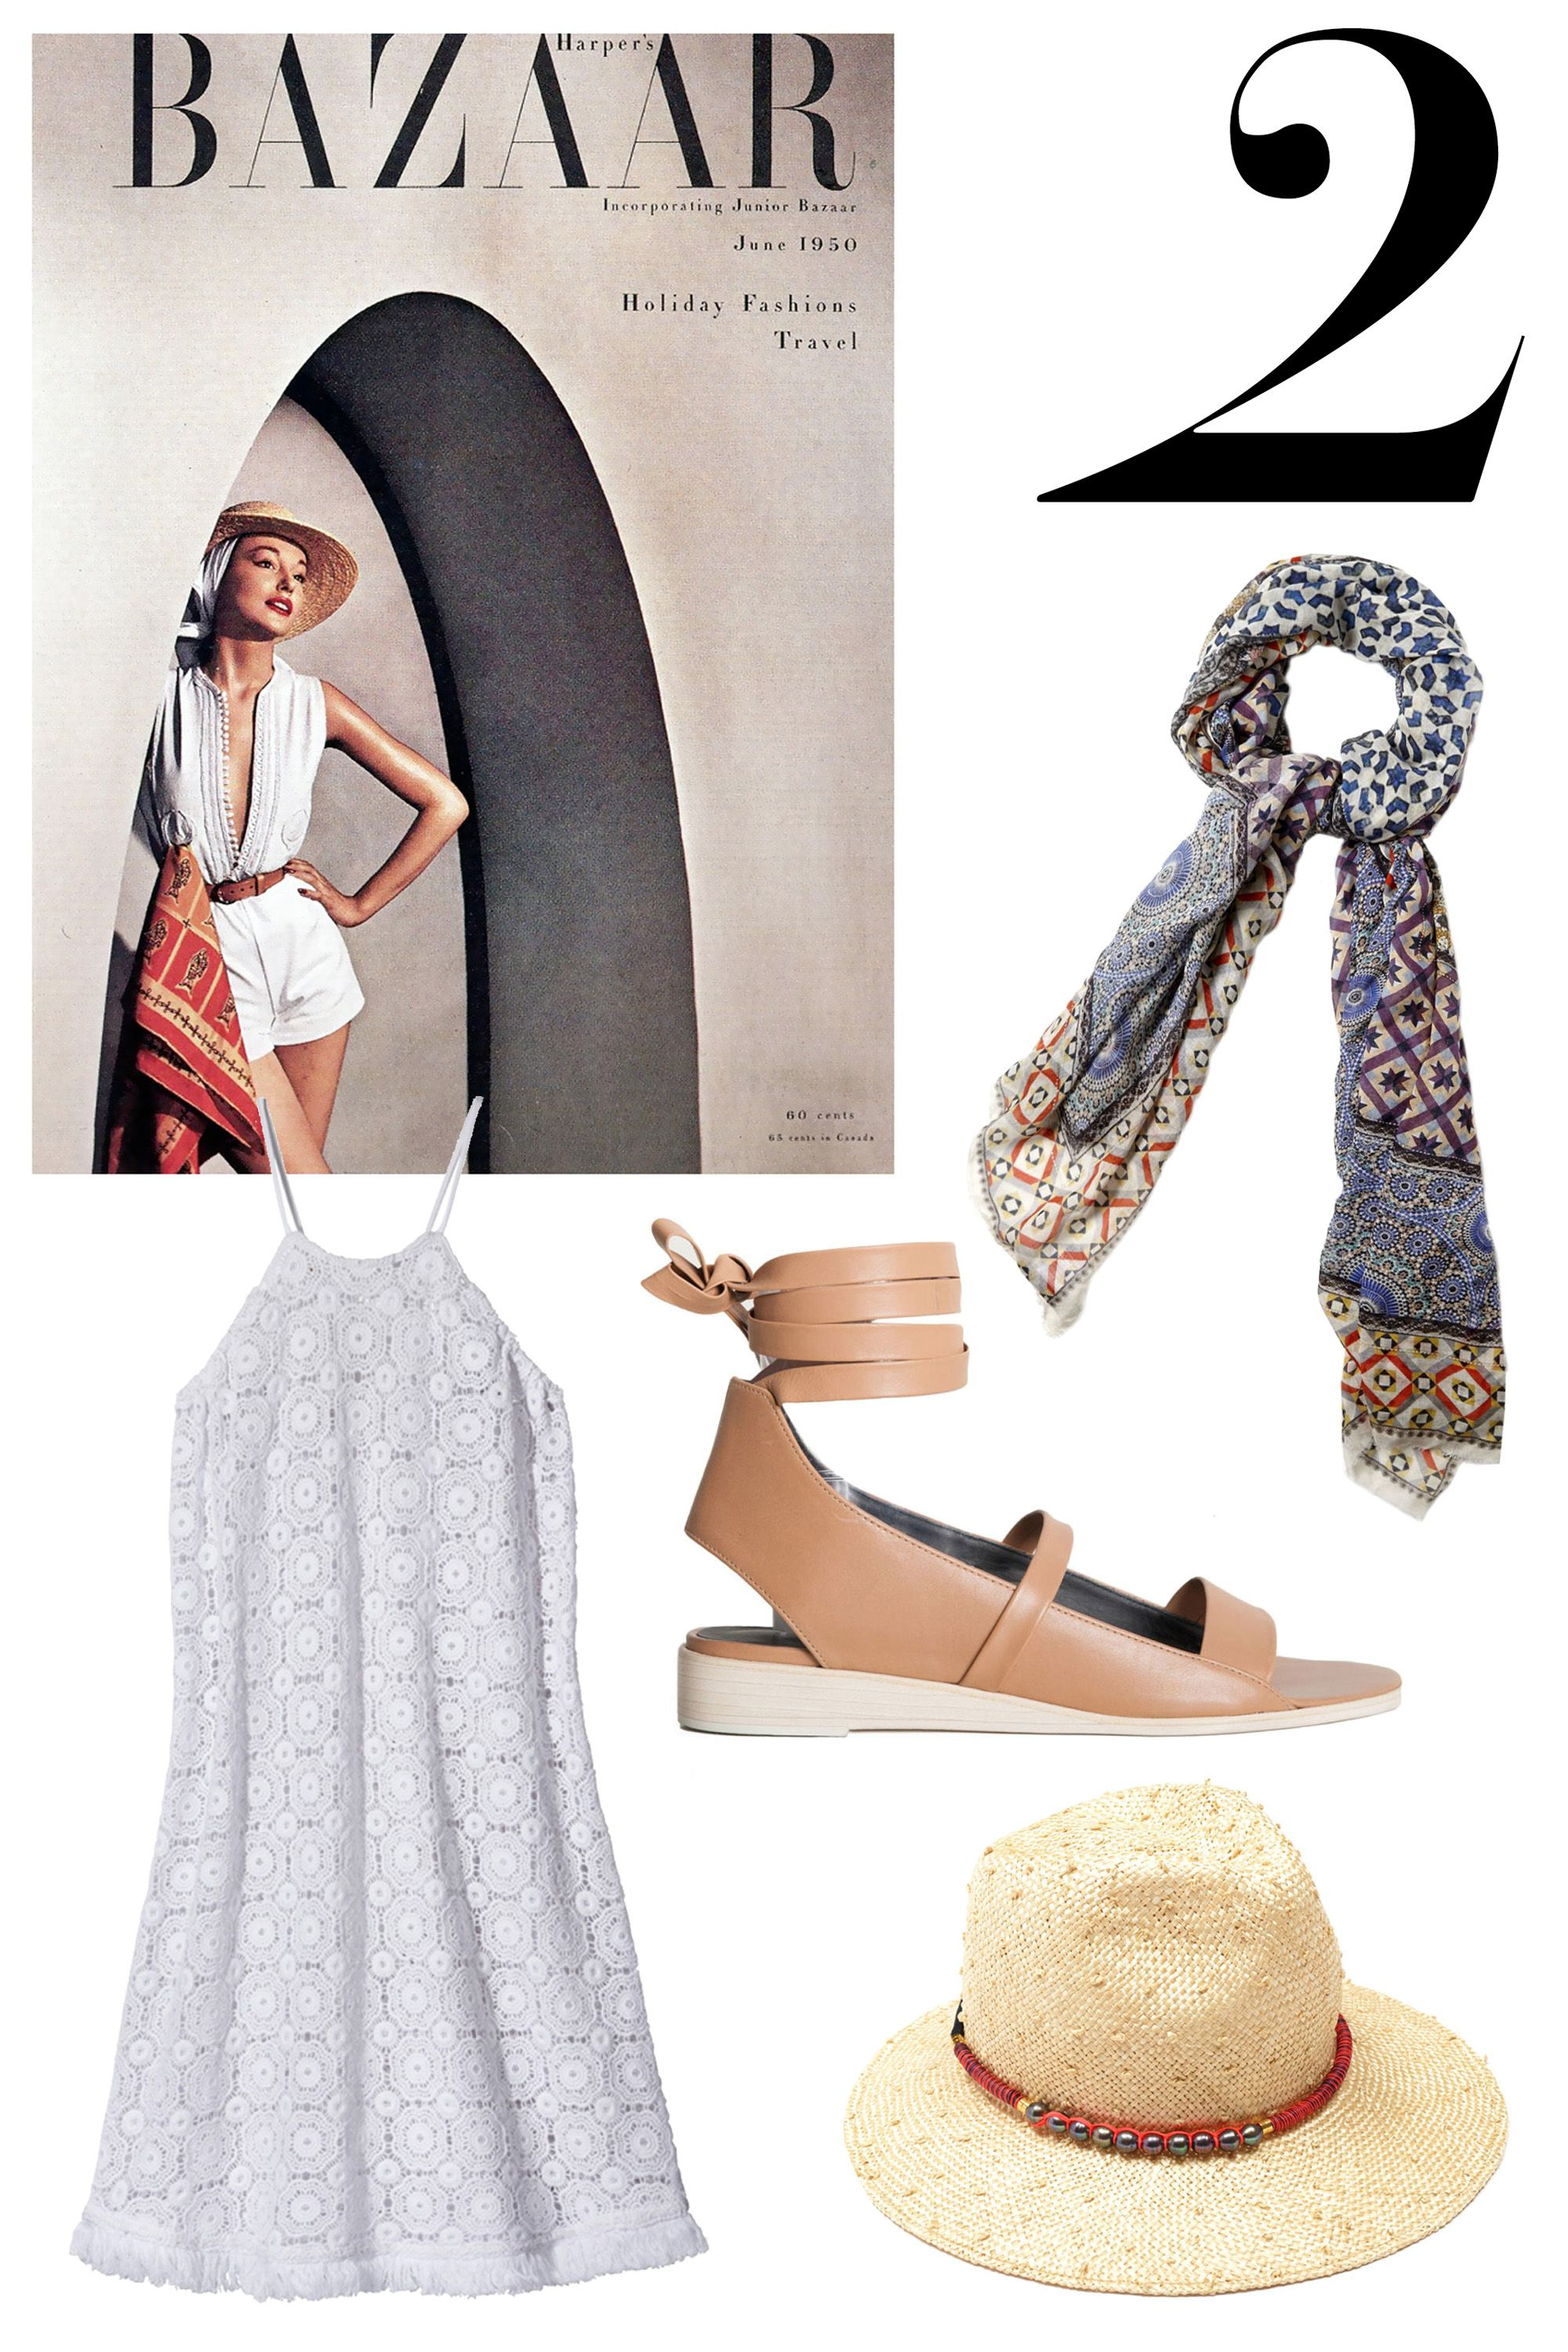 """Model, Natalie Paine looks flawlessly Tuscan-inspired chic in a detailed, white outfit with brown accents. Try a white lace dress, a picnic fedora, beige sandals and a patterned scarf.  <strong>Shop The Look: </strong><em>Miguelina dress, $320, <a target=""""_blank"""" href=""""http://shop.harpersbazaar.com/designers/miguelina/cindy-cover-up/"""">ShopBAZAAR.com.</a>, Faliero Sarti Compostella scarf, $406, <a target=""""_blank"""" href=""""http://shop.harpersbazaar.com/designers/faliero-sarti/compostella-scarf/"""">ShopBAZAAR.com.</a>, Tibi sandal, $425, <a target=""""_blank"""" href=""""http://shop.harpersbazaar.com/designers/tibi/ellison-sandal/"""">ShopBAZAAR.com.</a>, Gigi Burris x Lizzie Fortunato hat, $395, <a target=""""_blank"""" href=""""http://shop.harpersbazaar.com/designers/gigi-burris-x-lizzie-fortunato/picnic-fedora/"""">ShopBAZAAR.com.</a></em>"""